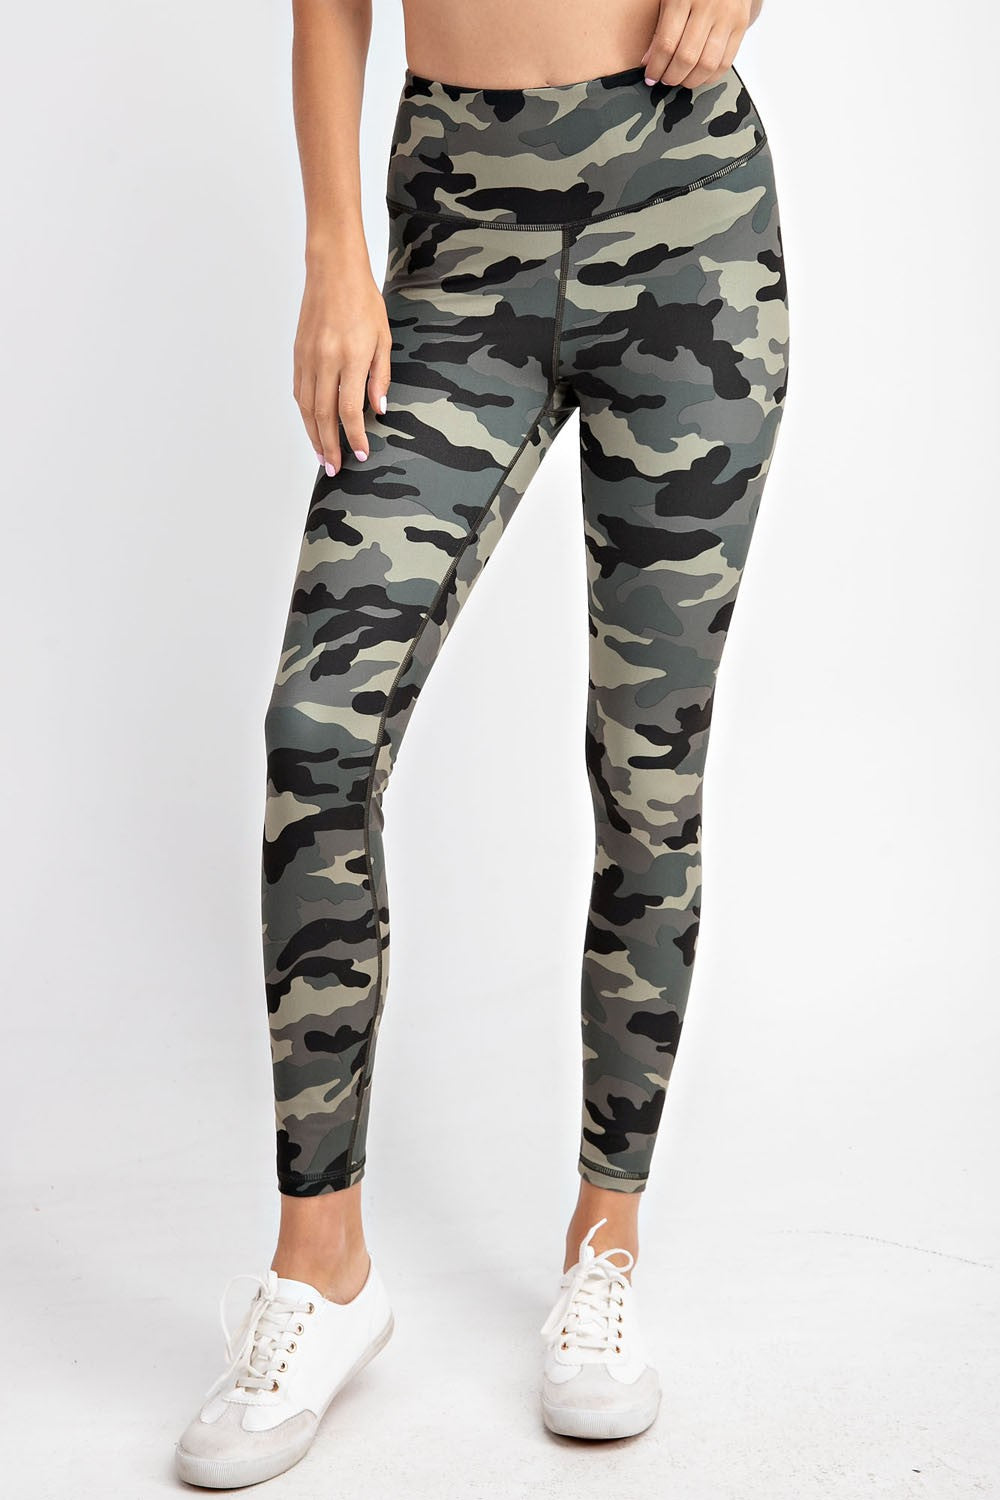 Olive Camo Buttery Soft Leggings